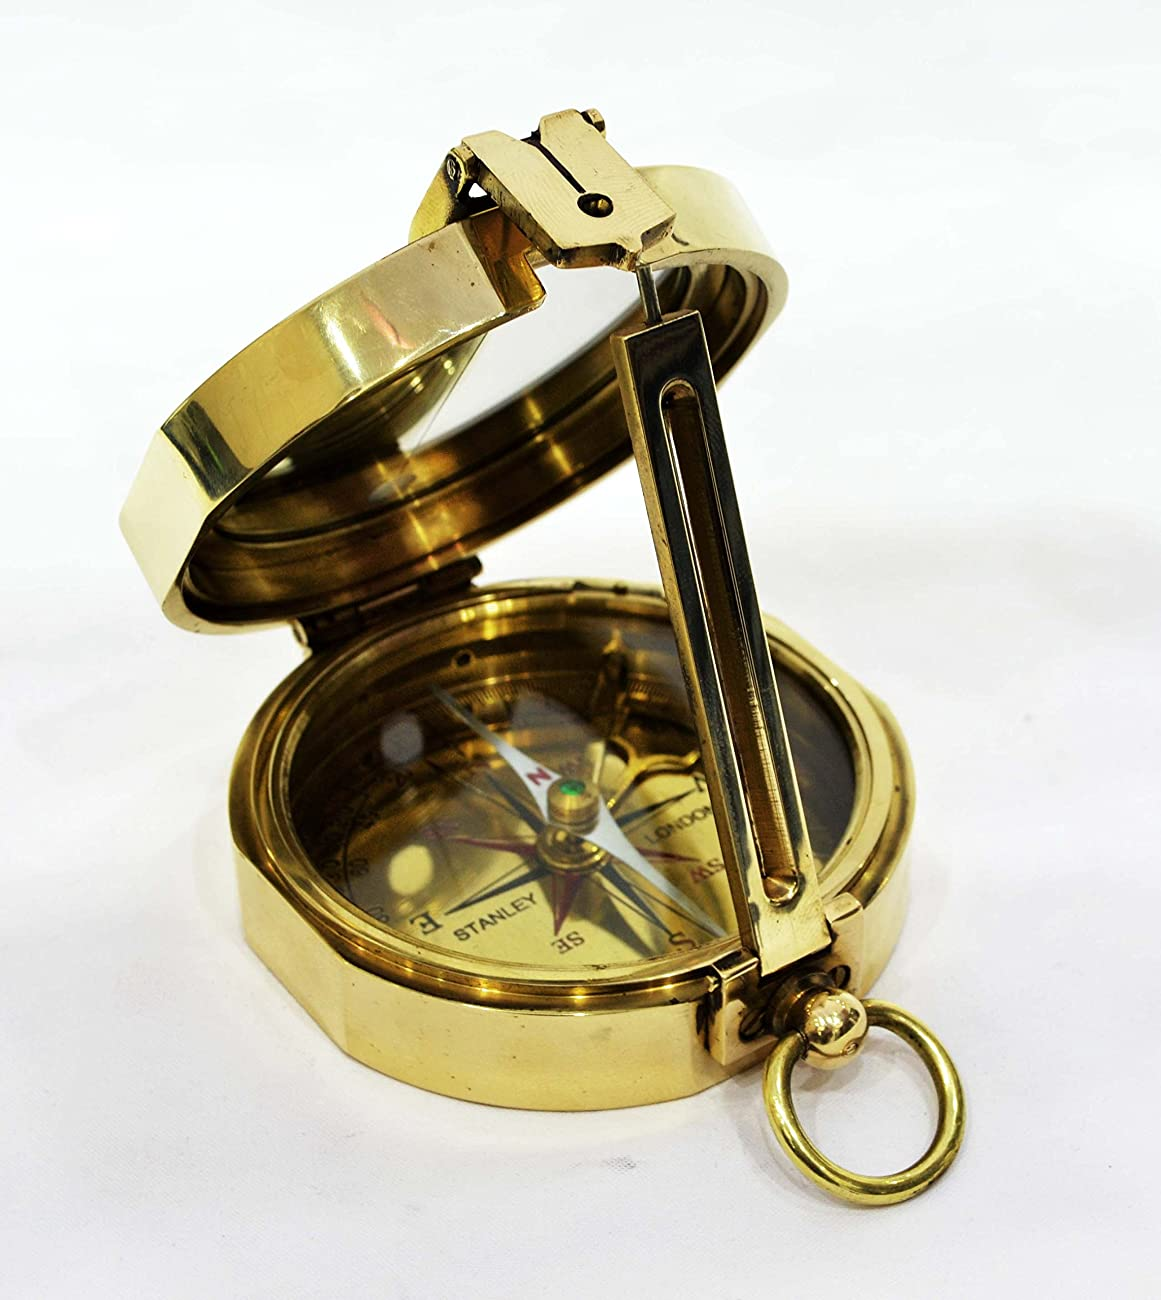 Beautiful Brass Gift Compass - Vintage Replica 0